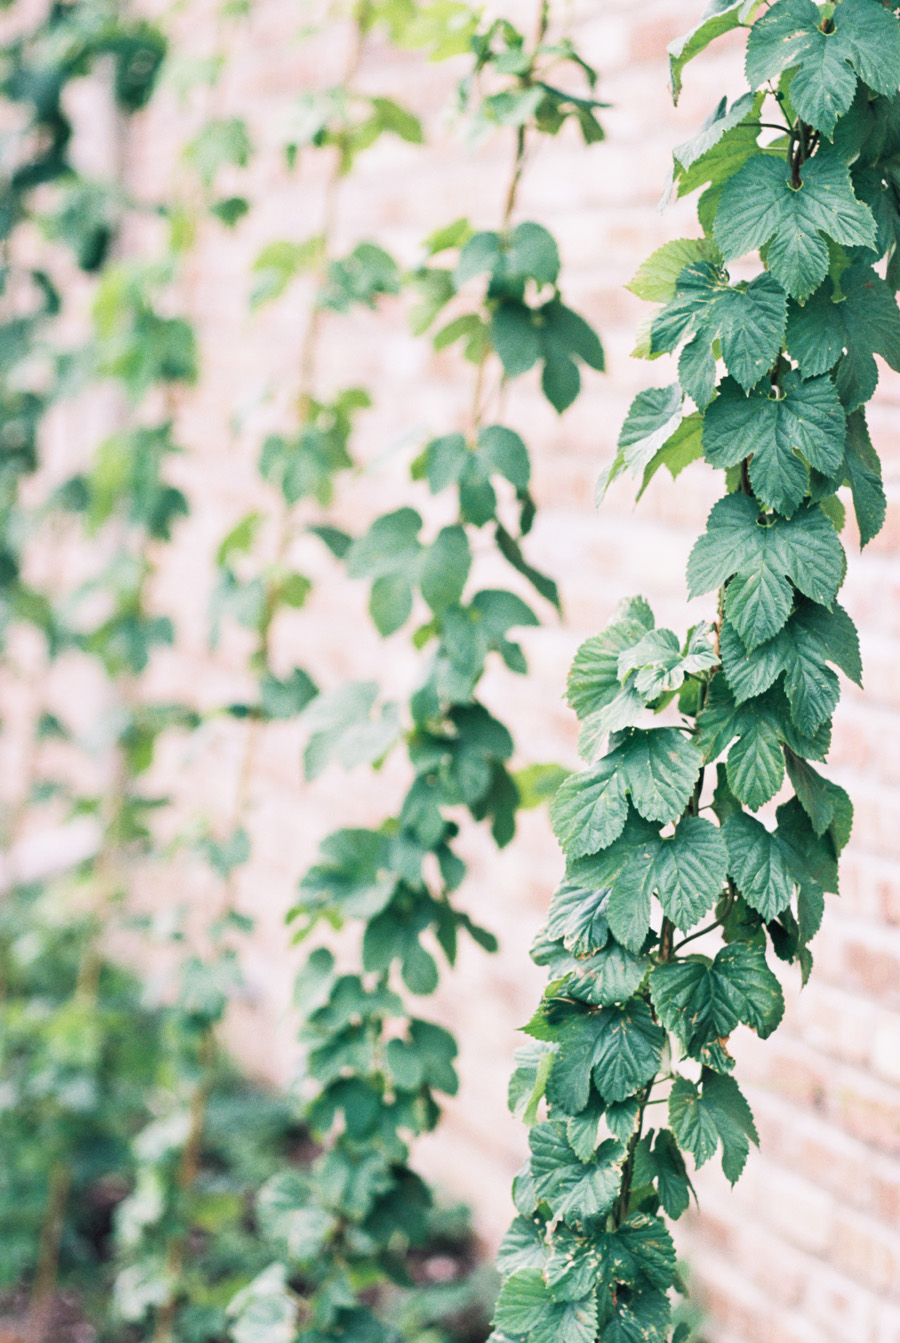 Hop vine growing on the side of Warehouse 109.